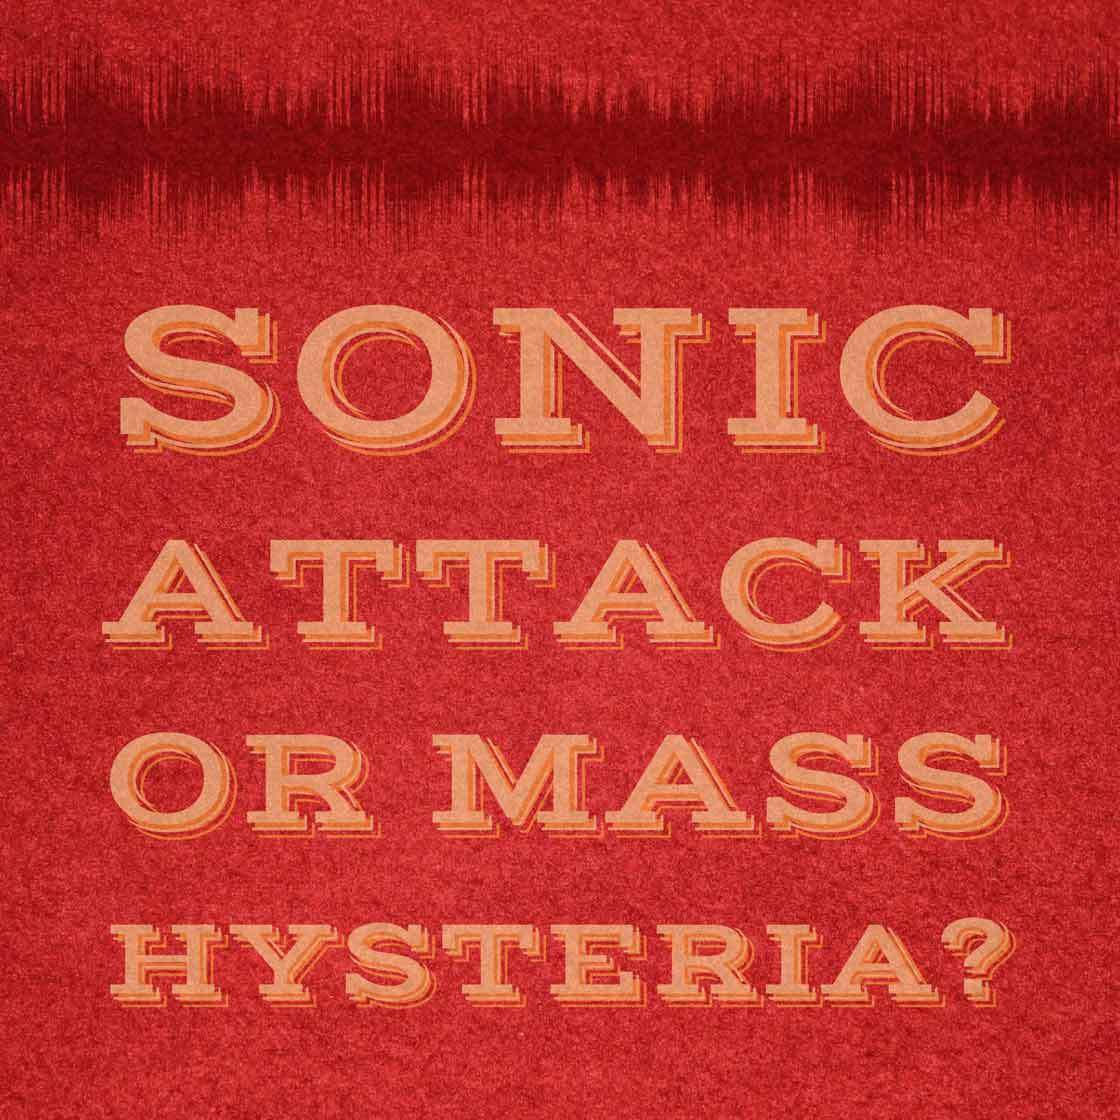 Sonic Attack or Mass Hysteria?